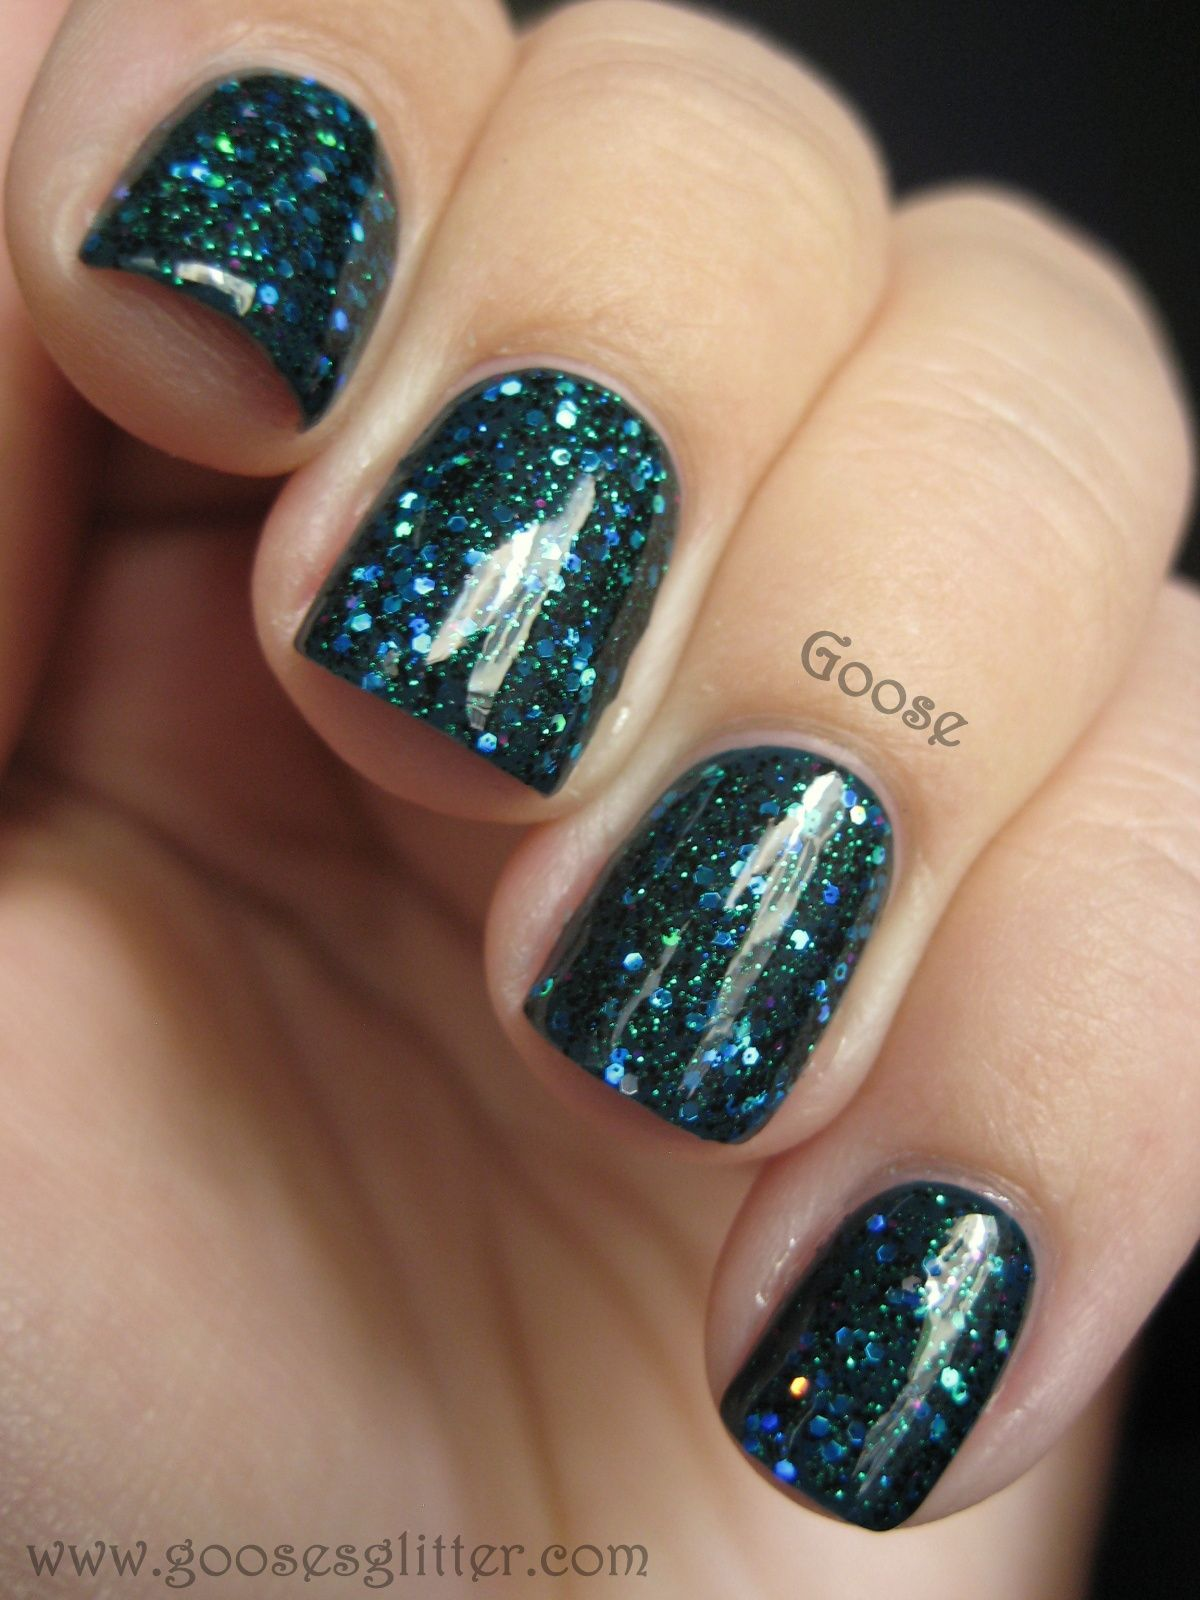 Great indie polish from the Hungry Asian Sea Creature is the name